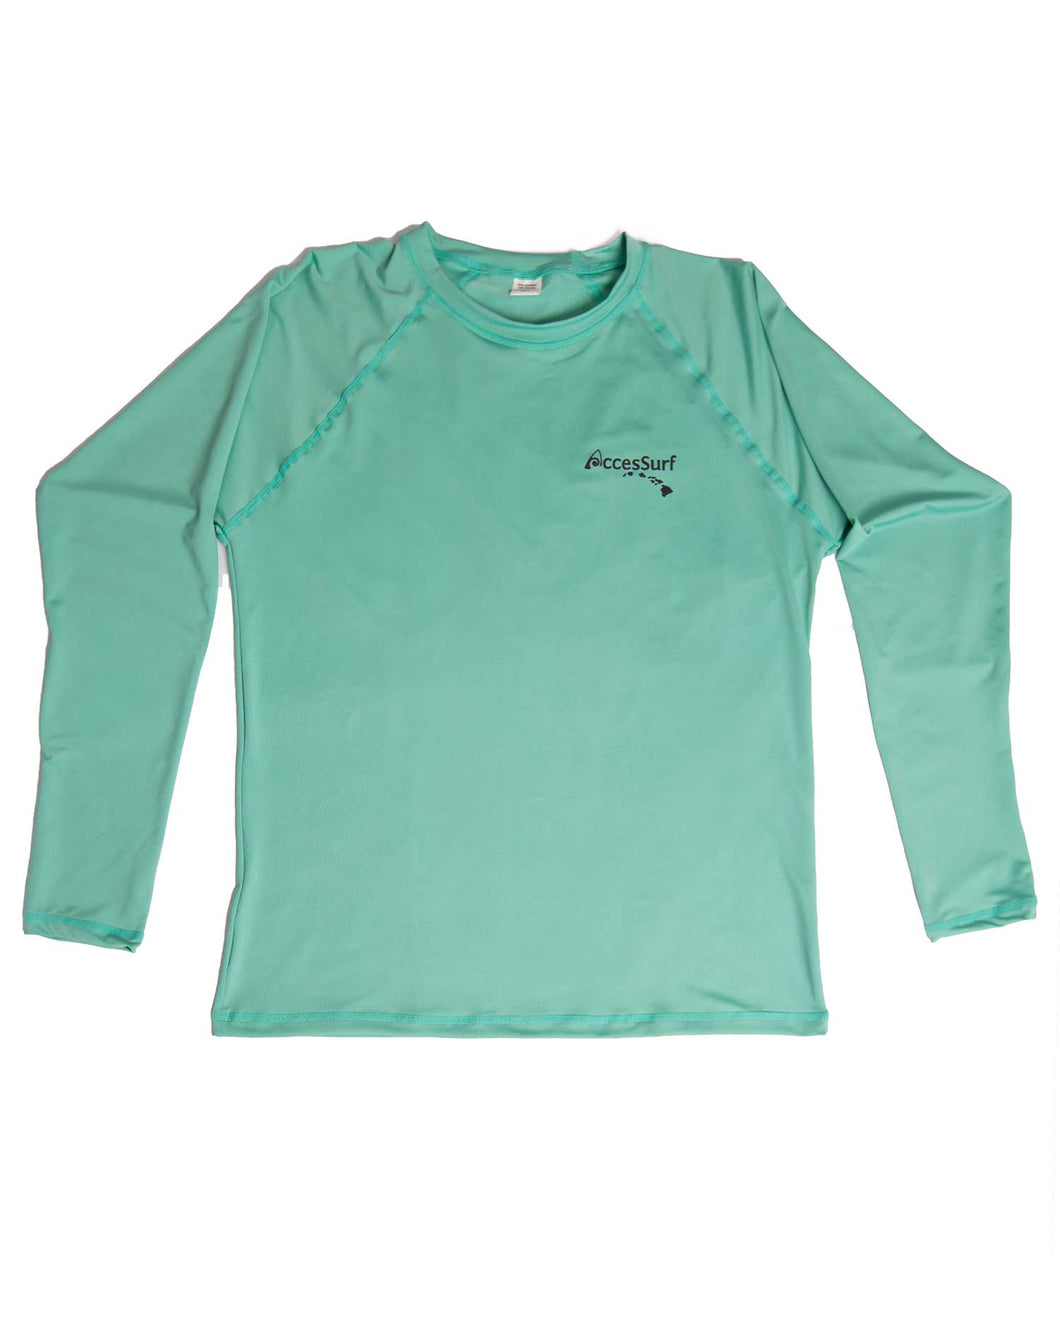 Rash Guard/Sun Shirt -Long sleeve AccesSurf logo